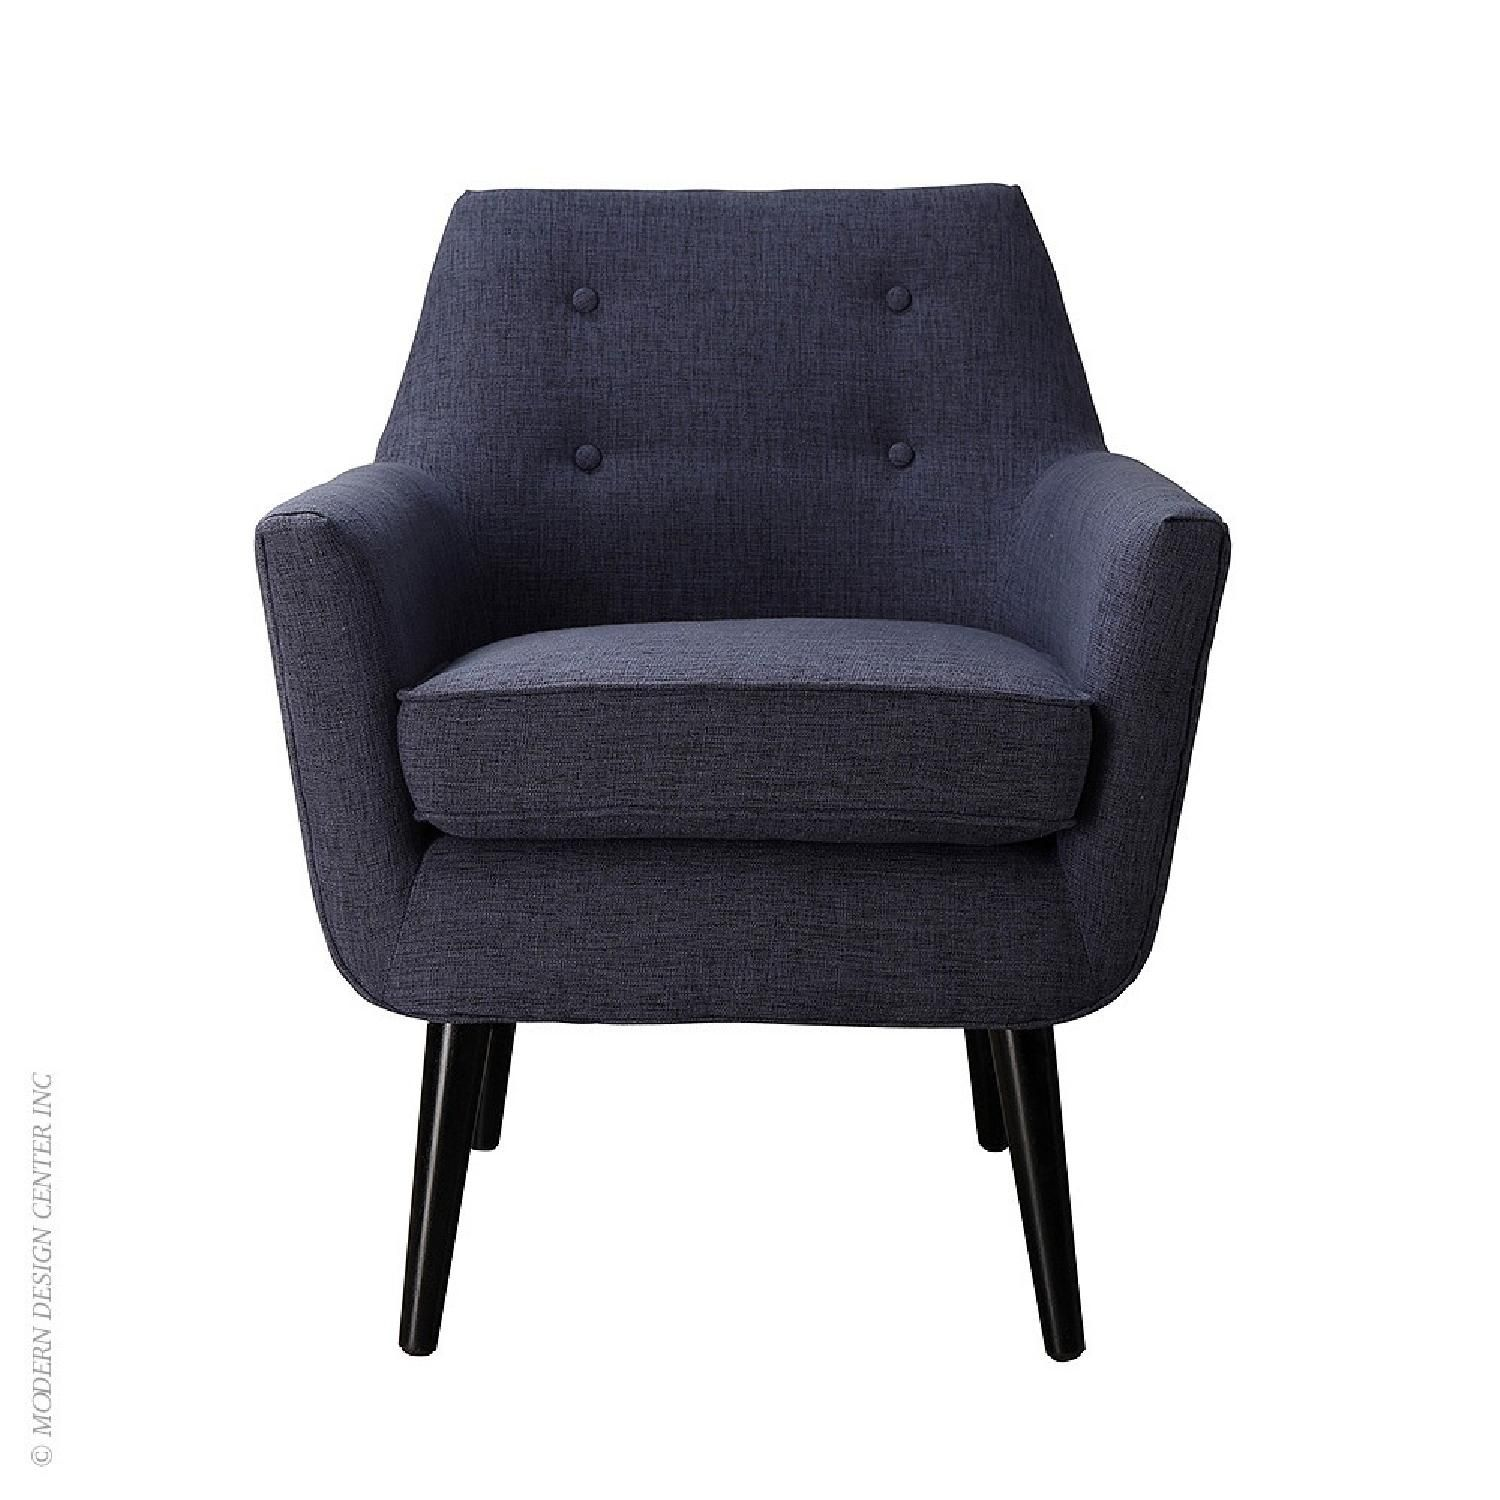 Tov clyde navy linen chair in new condition available for sale in ny queens 11385